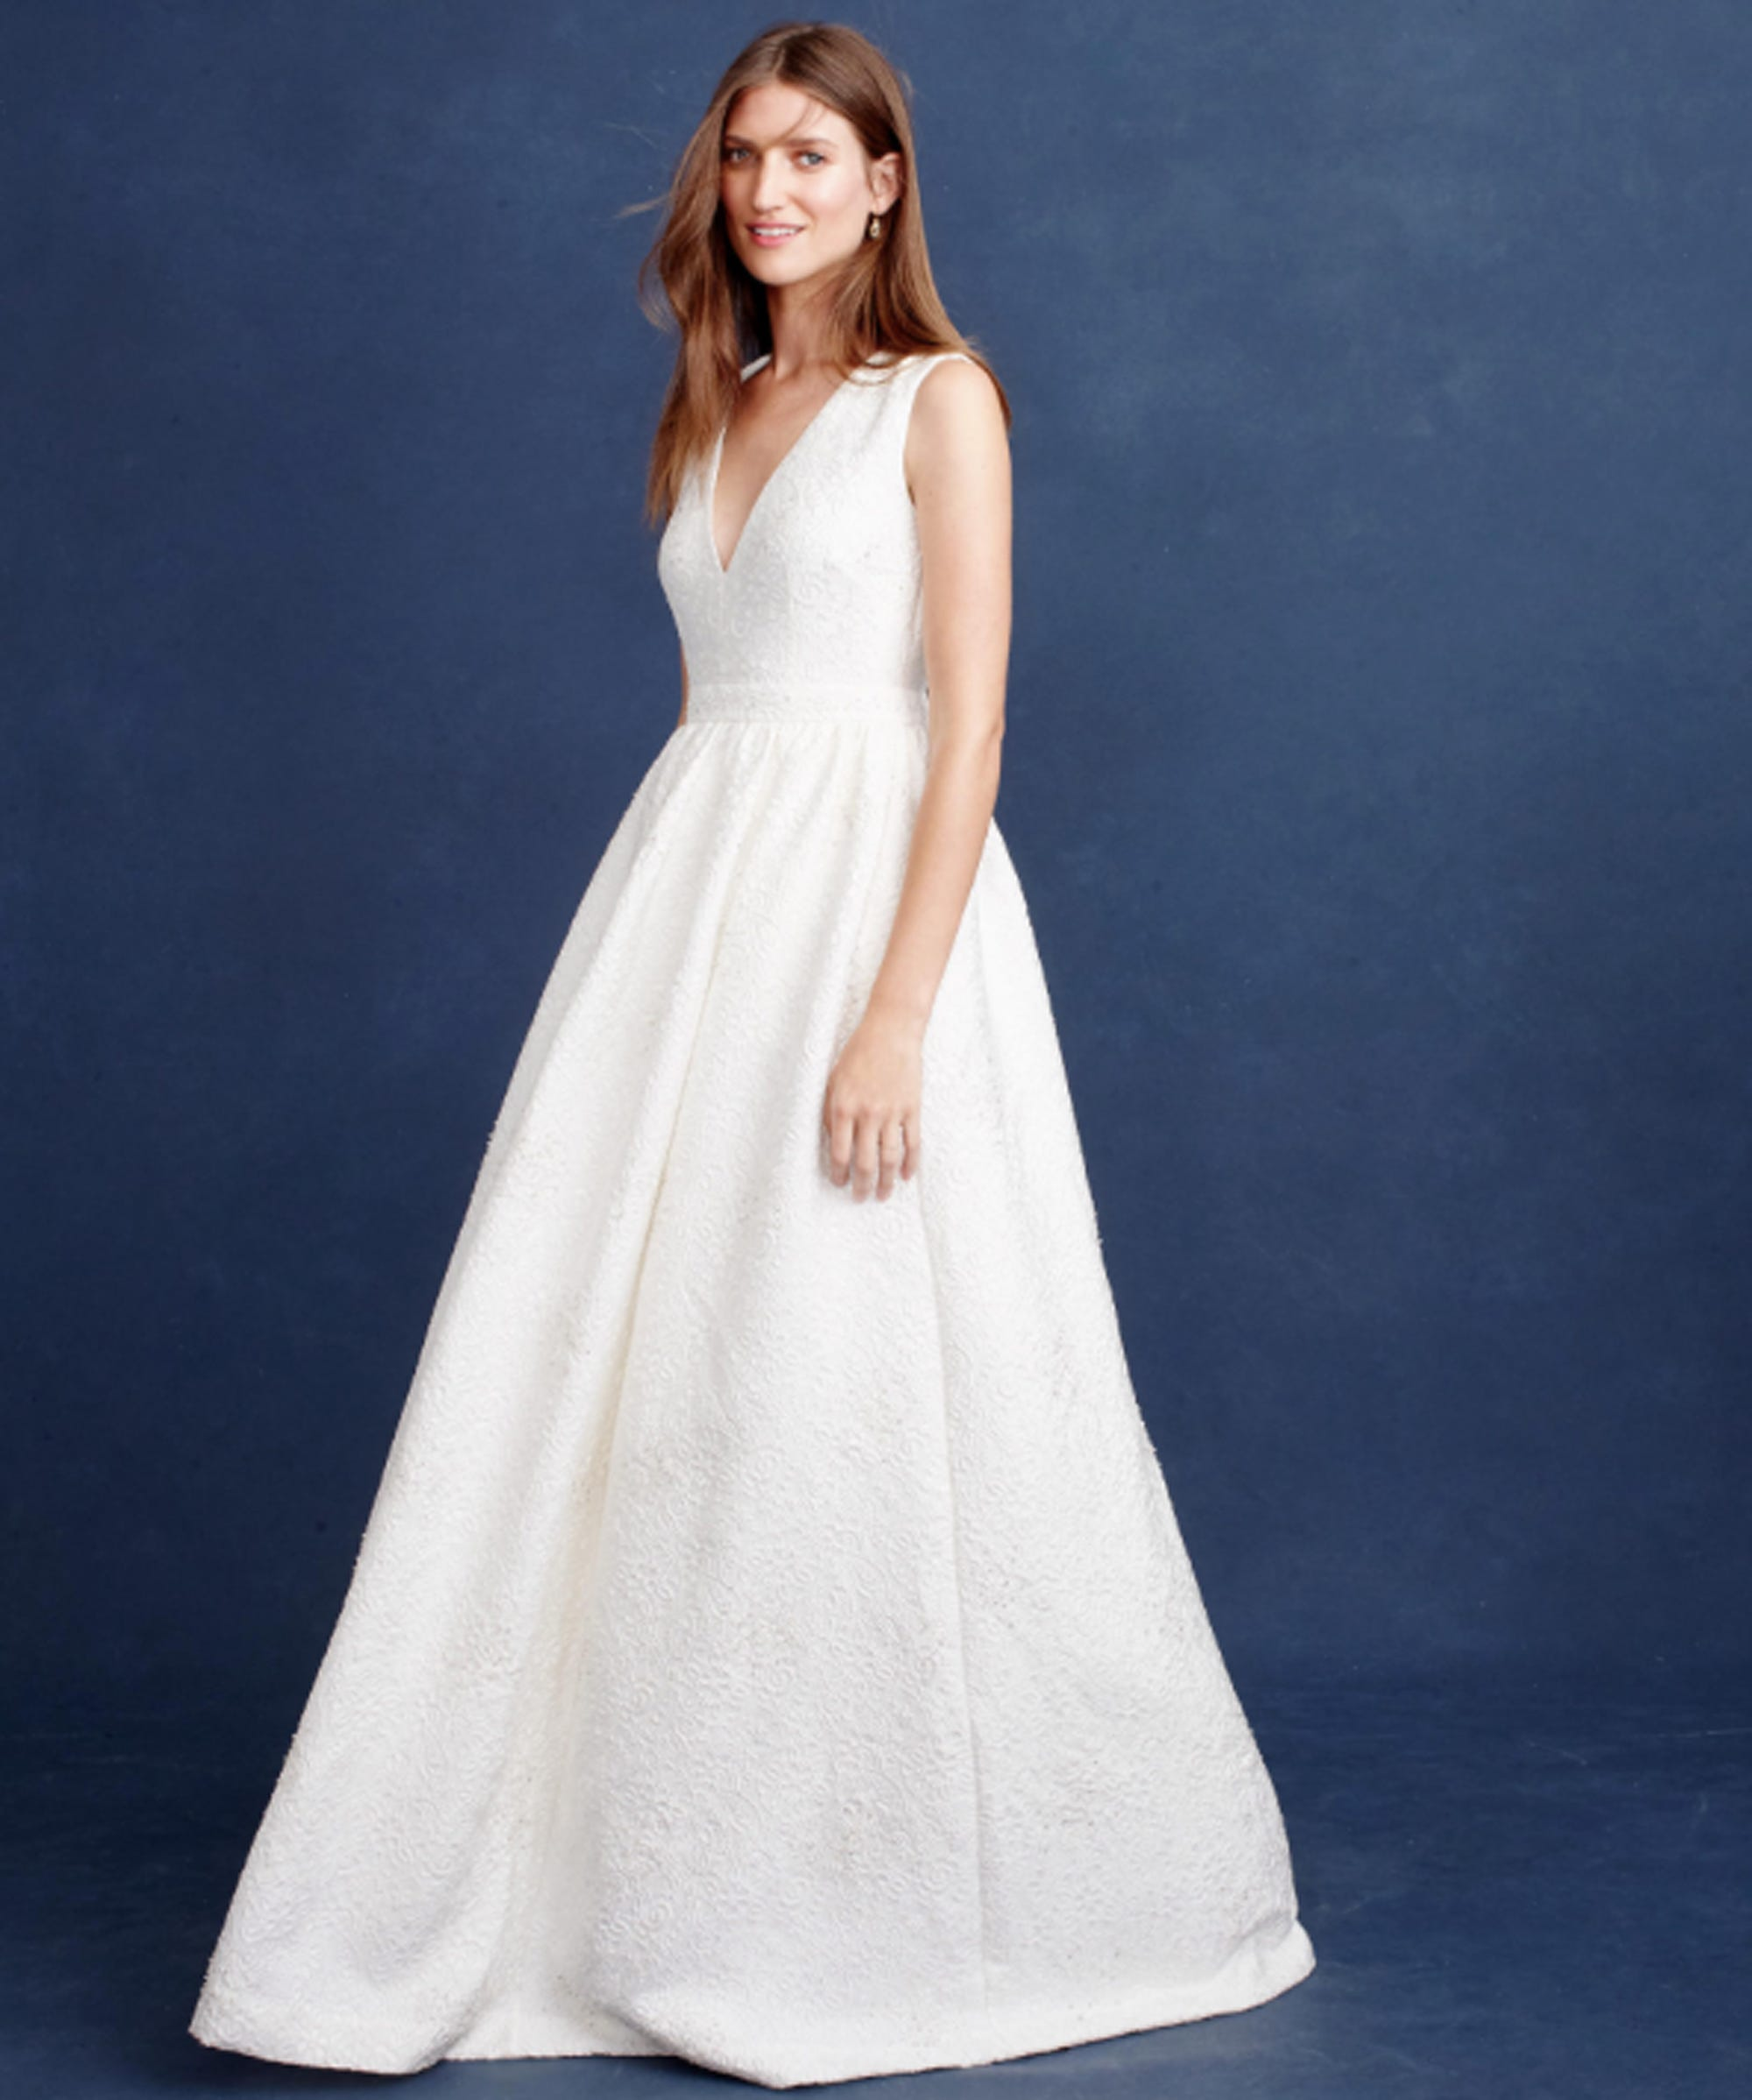 Forum on this topic: Calling All Brides J Crew's Wedding Boutique , calling-all-brides-j-crews-wedding-boutique/